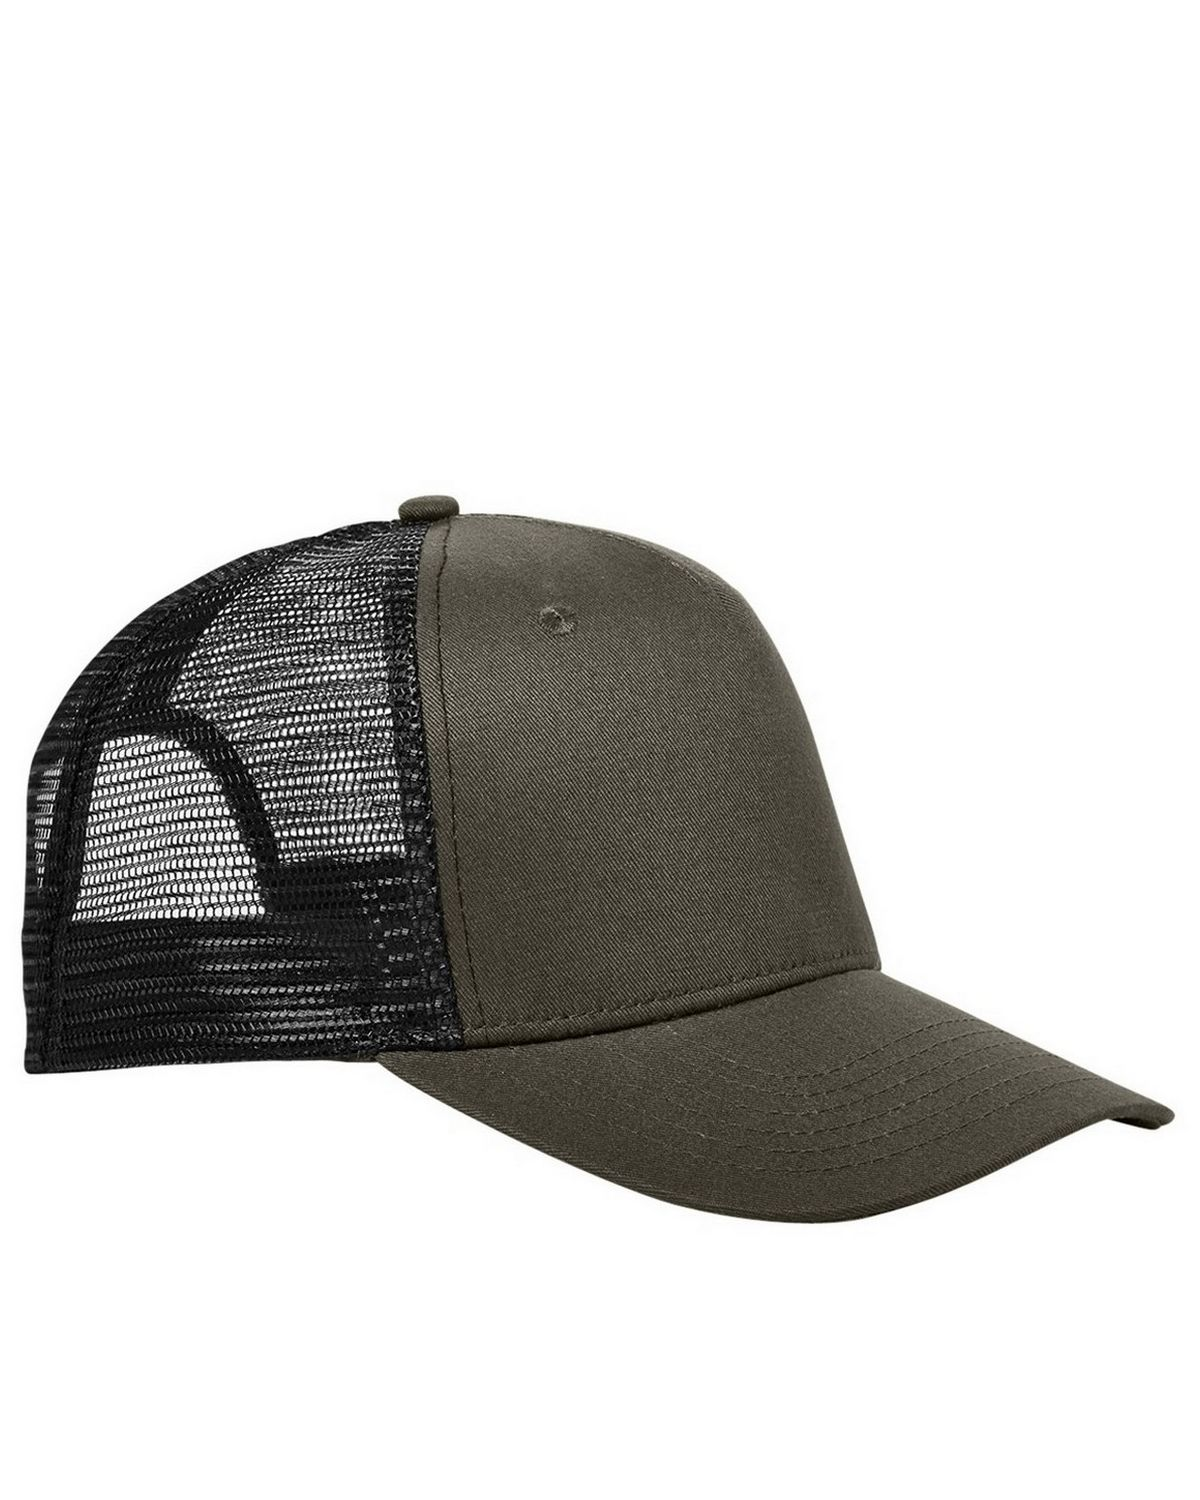 Big Accessories BX025 Surfer Trucker Cap - Olive/Black - One Size BX025